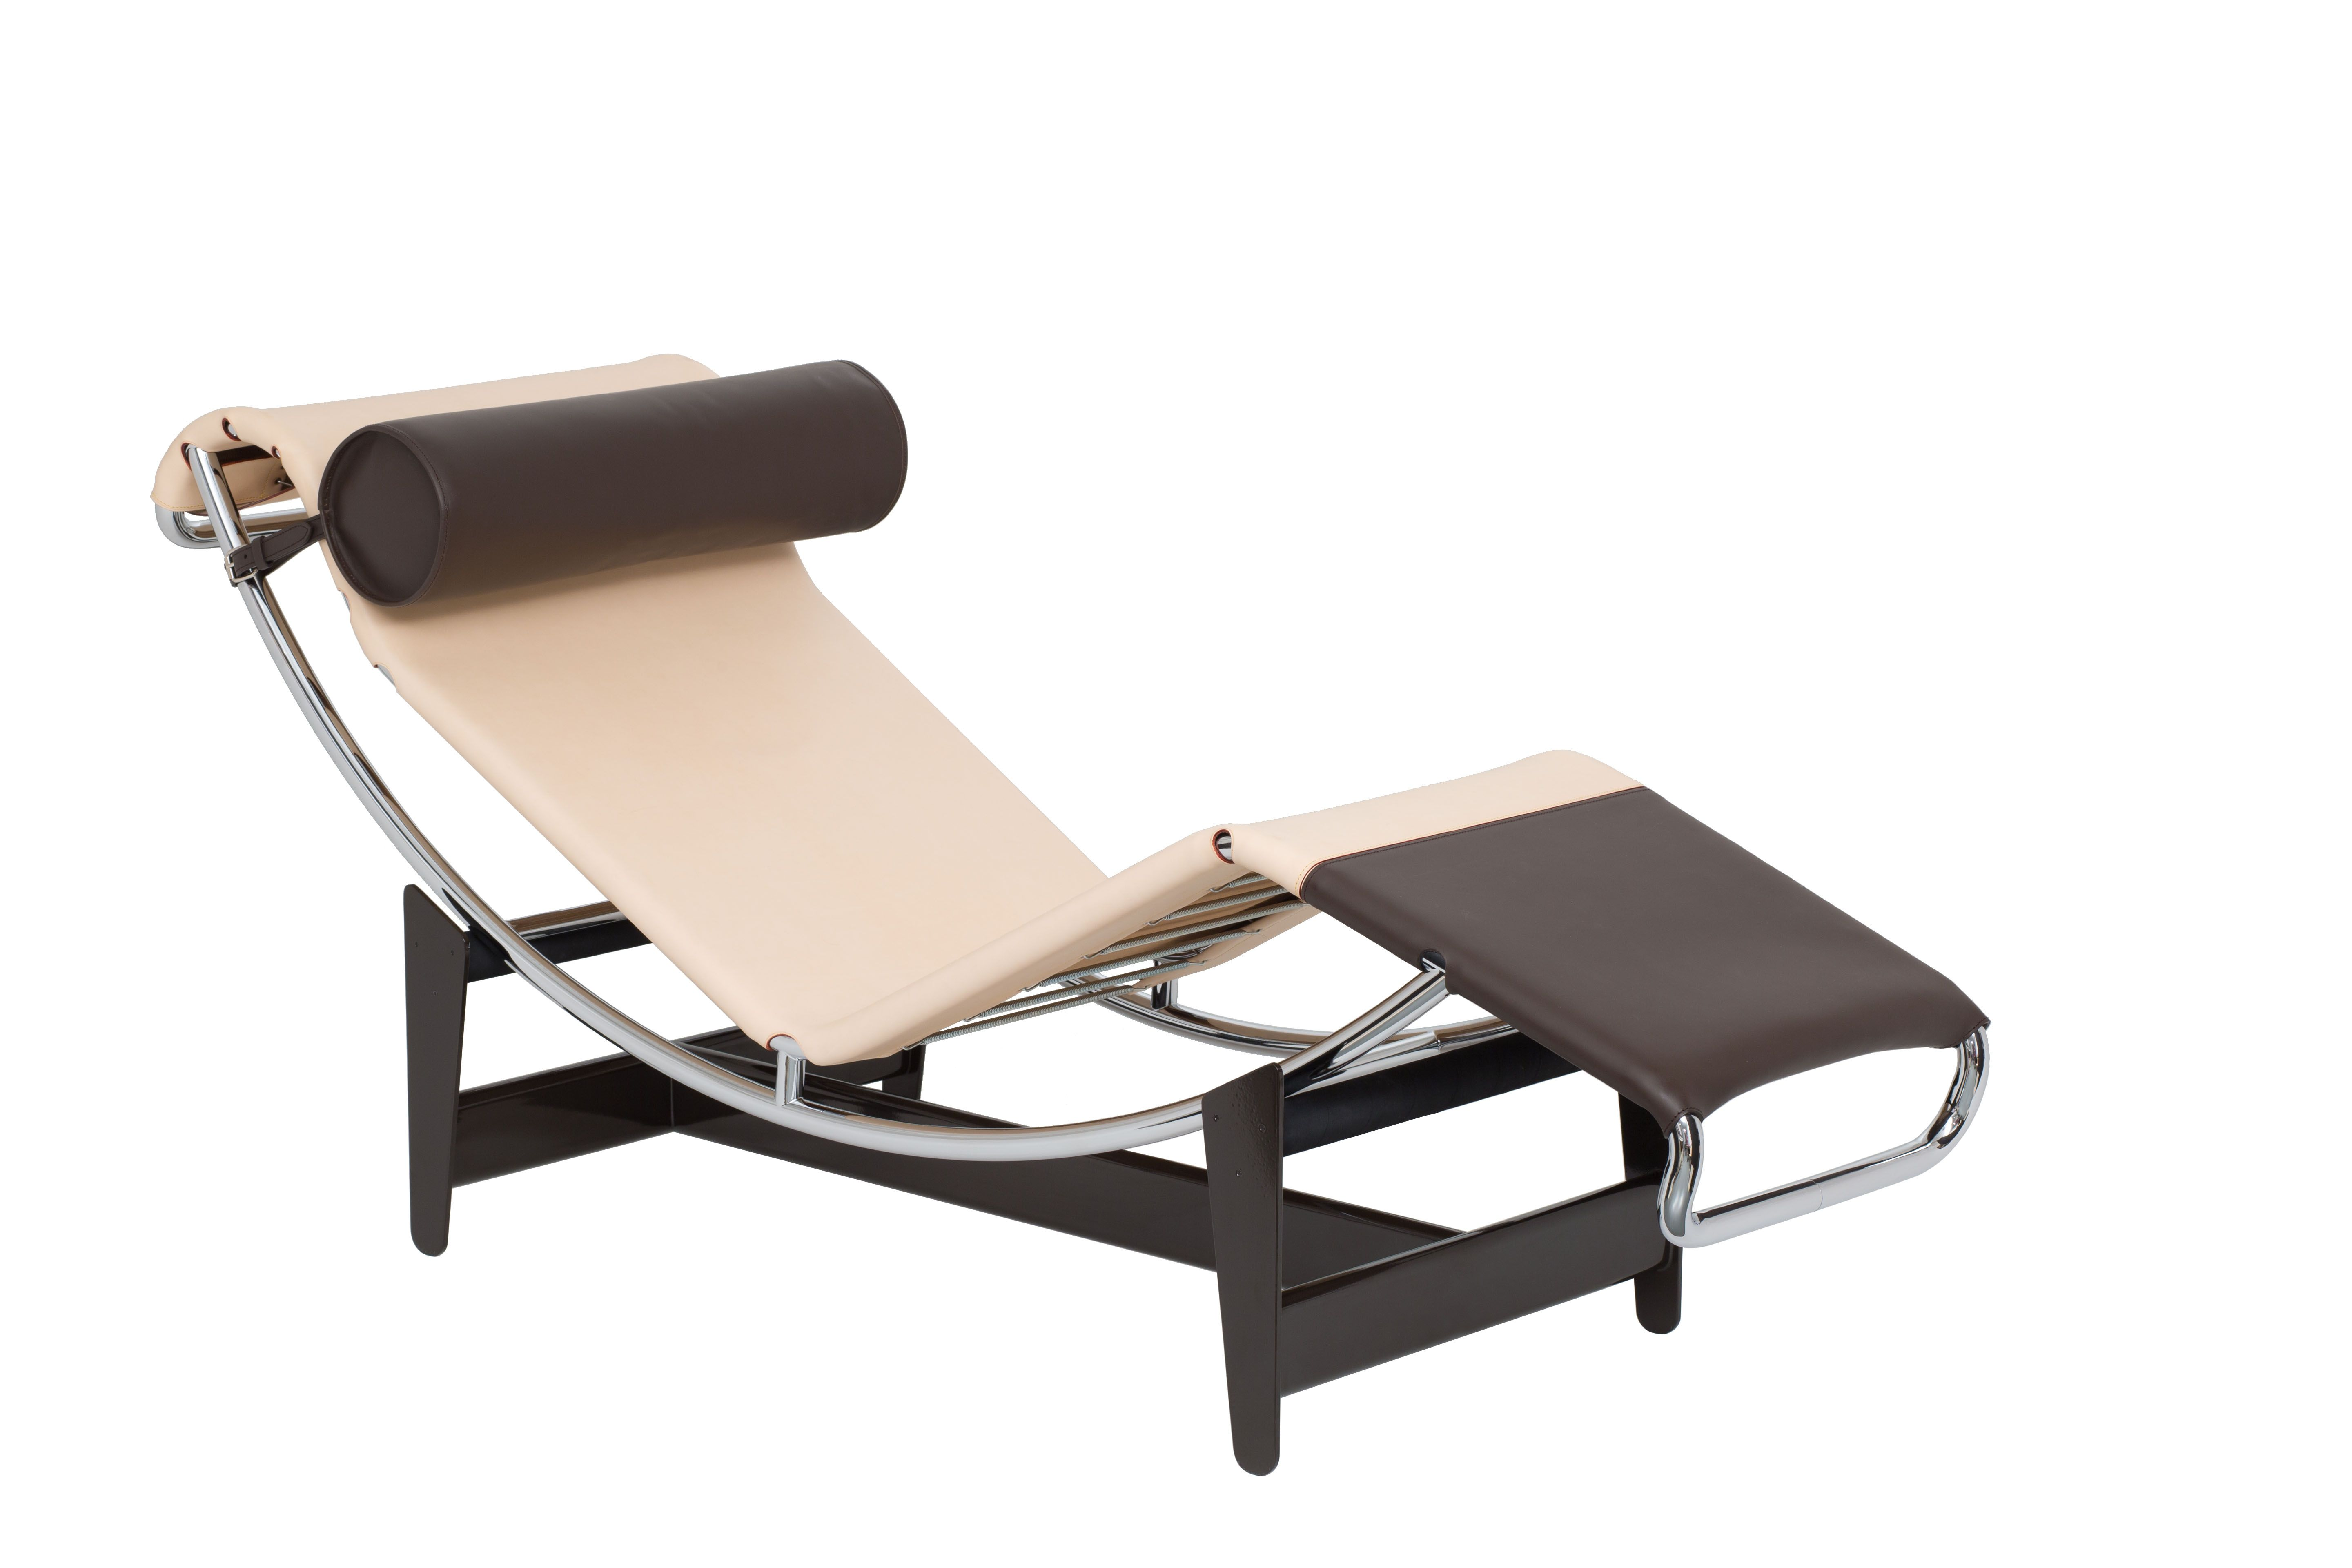 Chaise Longue LC4 CP An Homage By Cassina To Charlotte Perriand In The Occasion Of 2014 Icon Collection Louis Vuitton